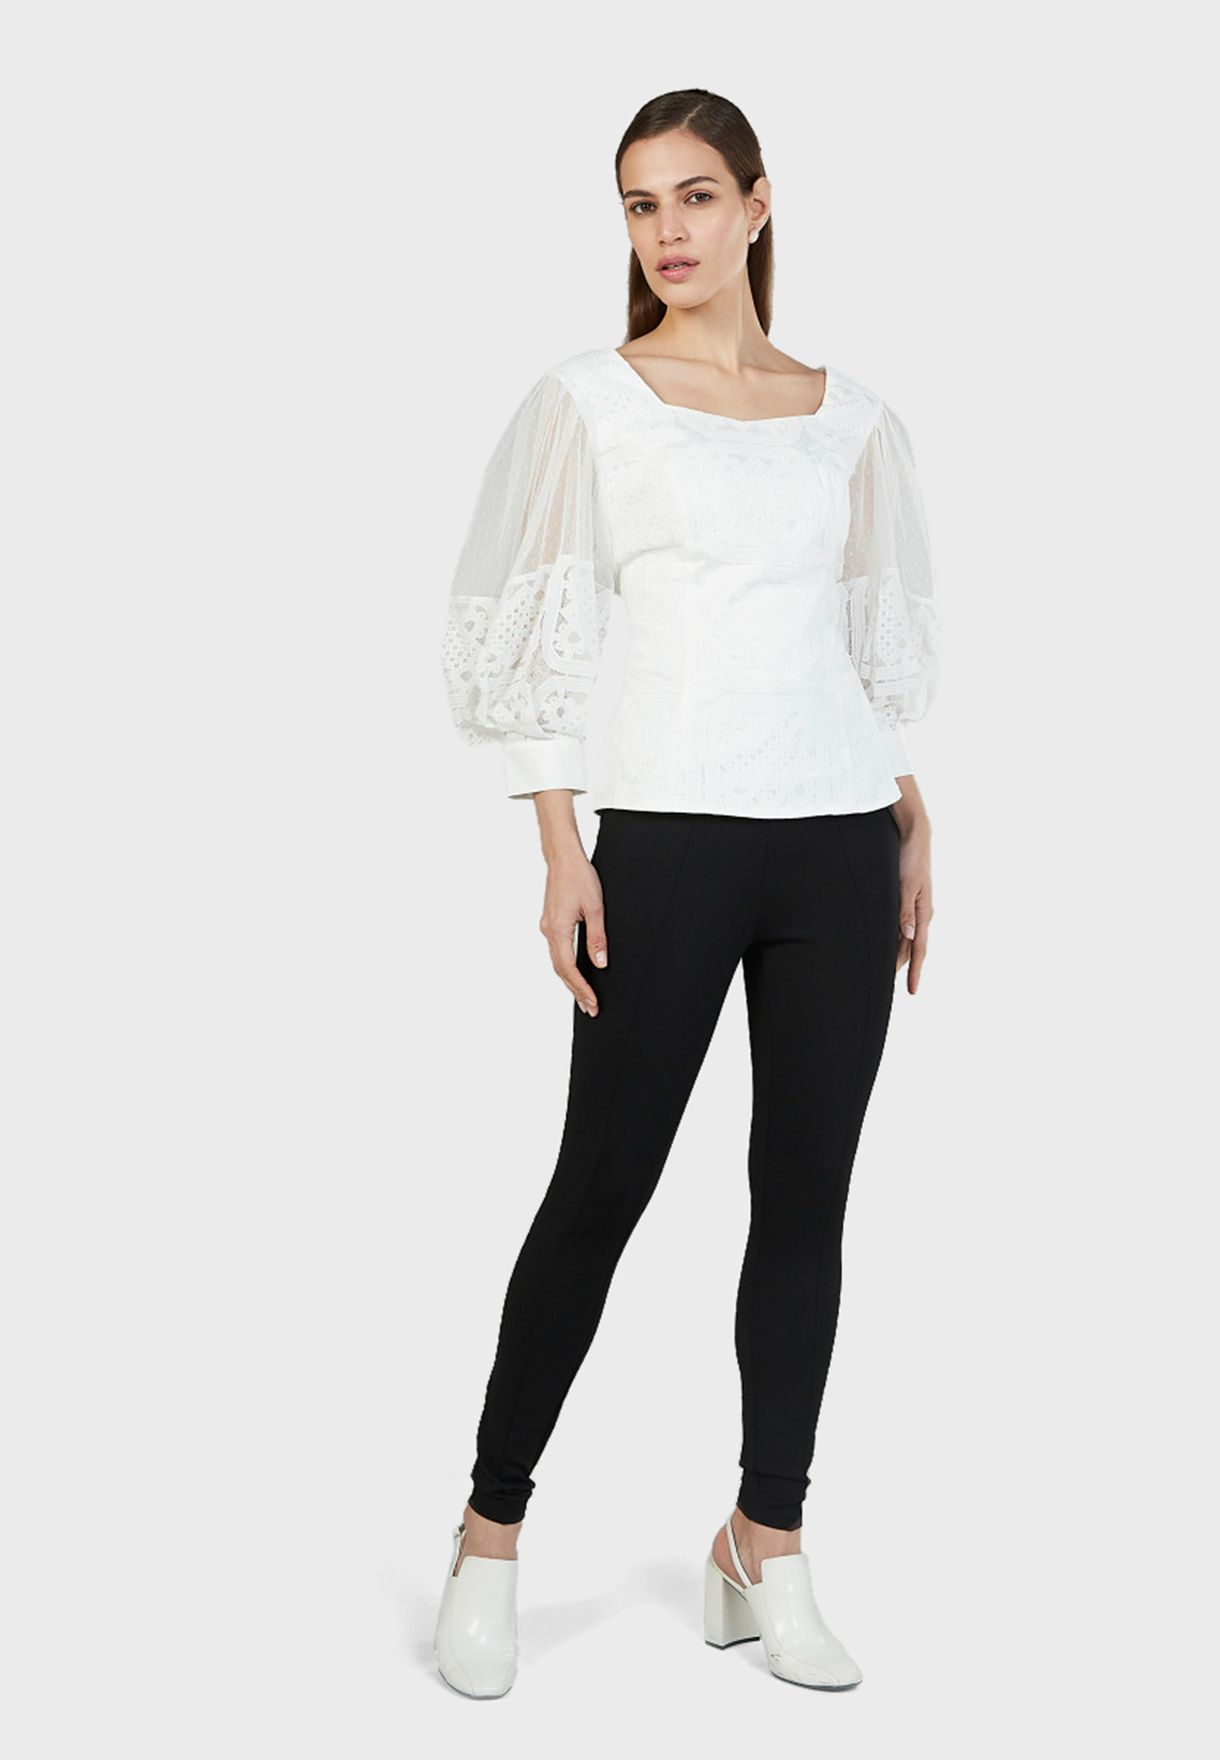 Square Neck Mesh Sleeve Top